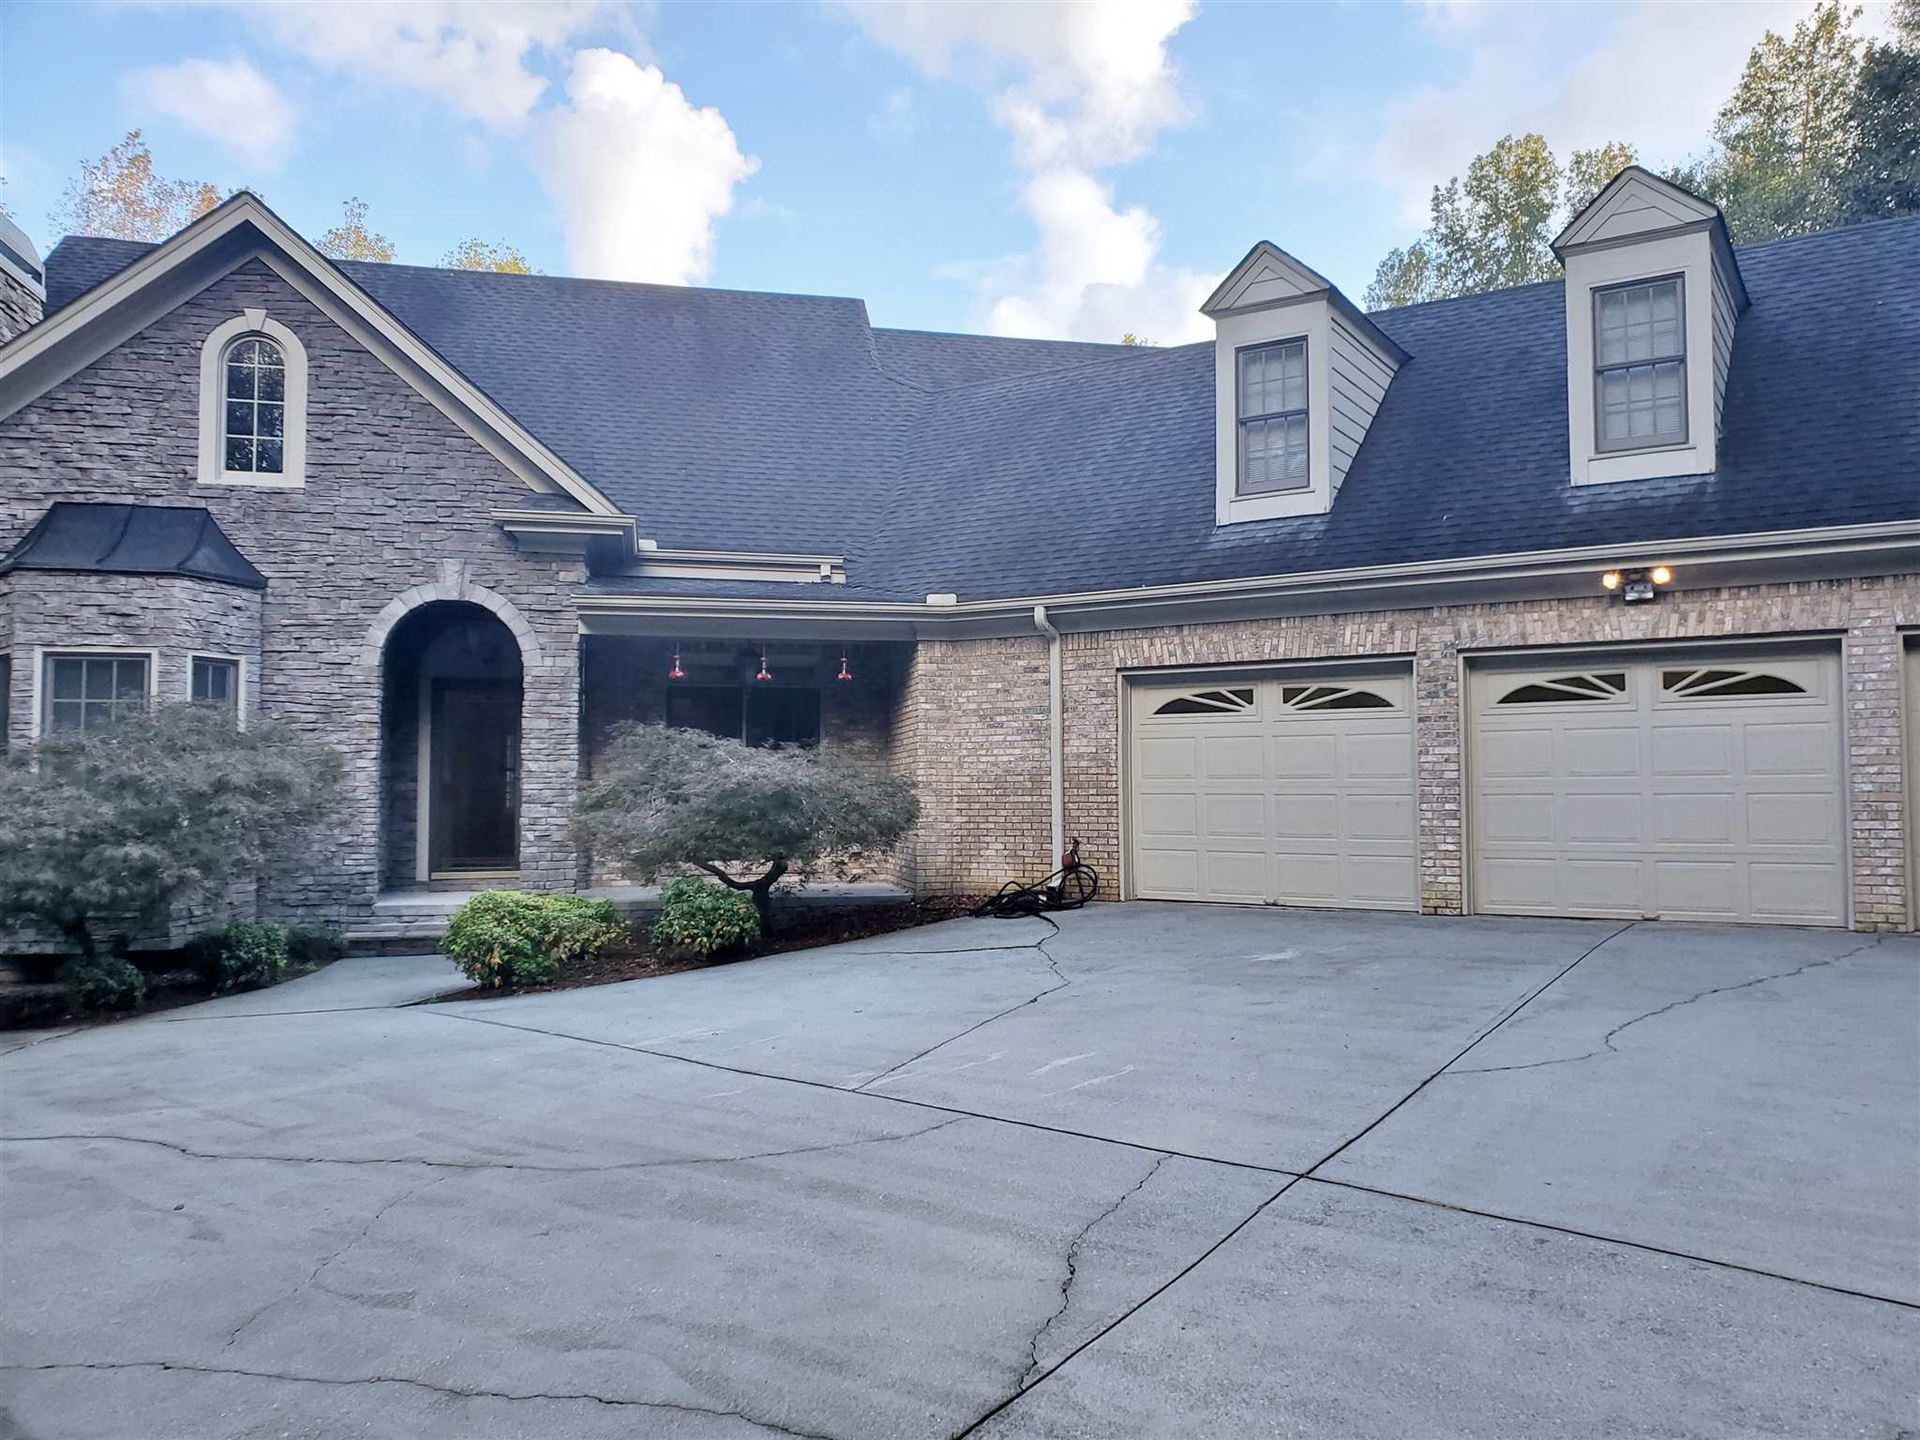 50 Fieldsparrow Ct, Oxford, GA 30054 - #: 8857209